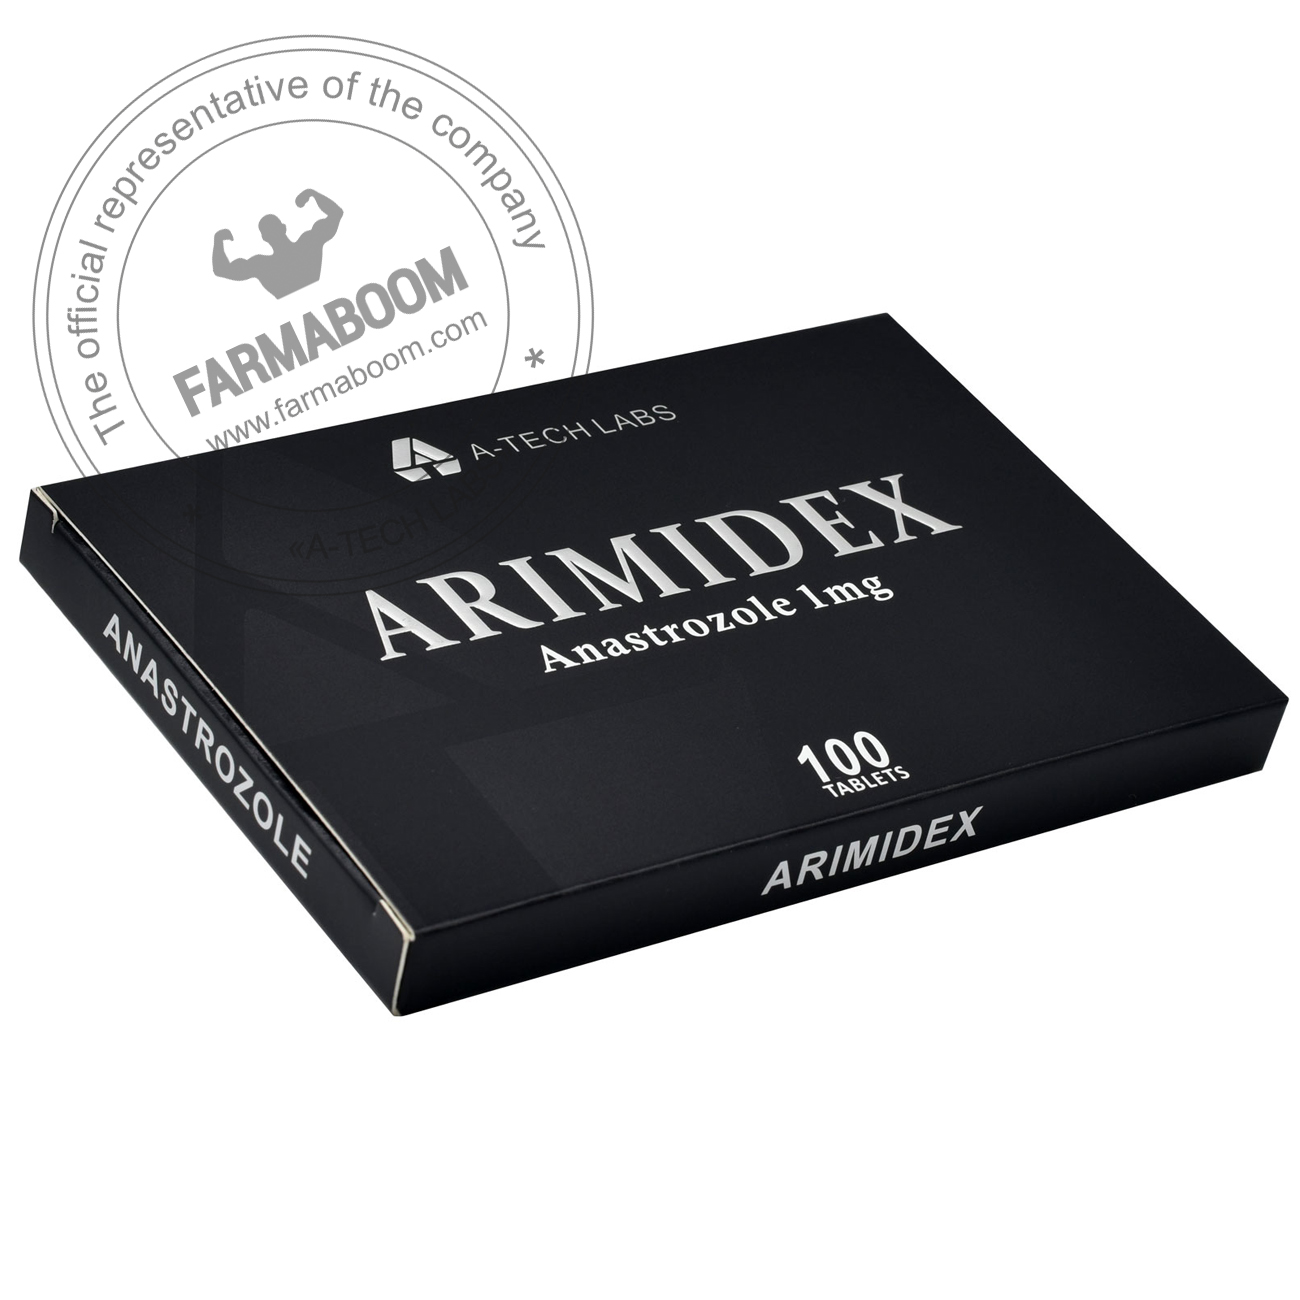 ARIMIDEX_A-TECH LABS_farmaboom_com